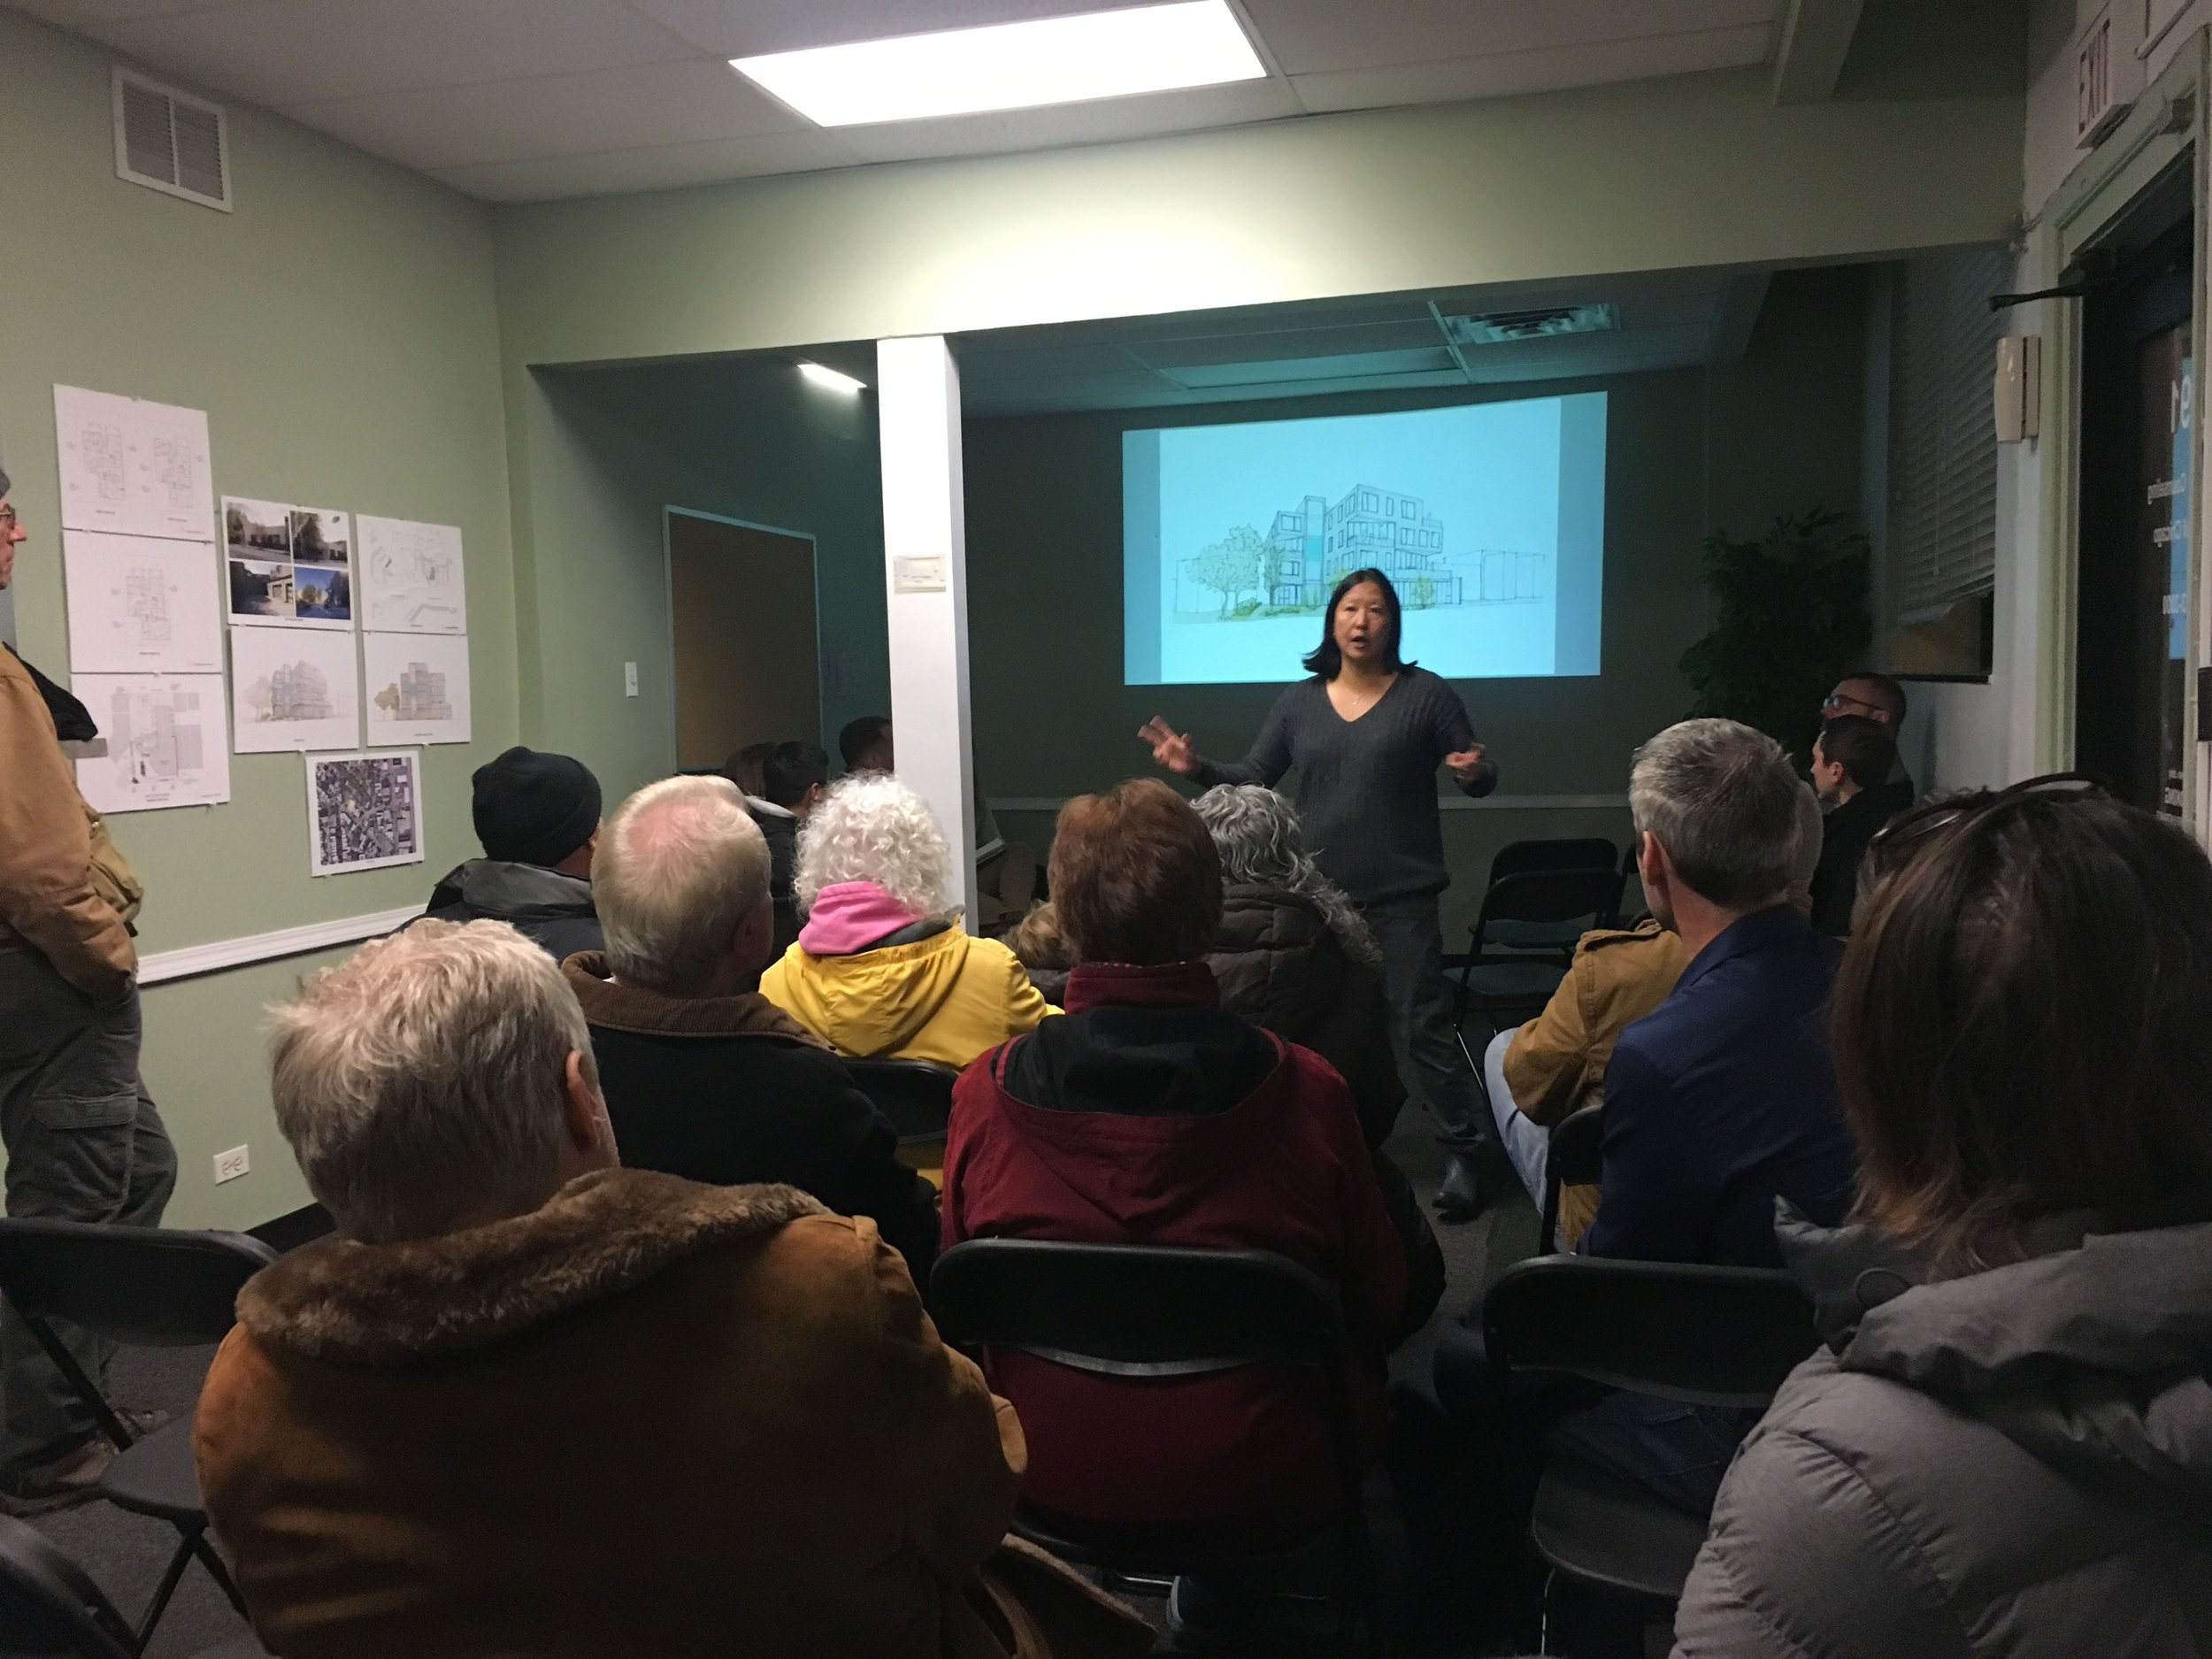 RIDGE PROJECT MEETS WITH NEIGHBORS   Frances Kao  with SLH is planning to develop new  multi-use building  on Ridge Ave that focuses on universal, sustainable, and accessible design.